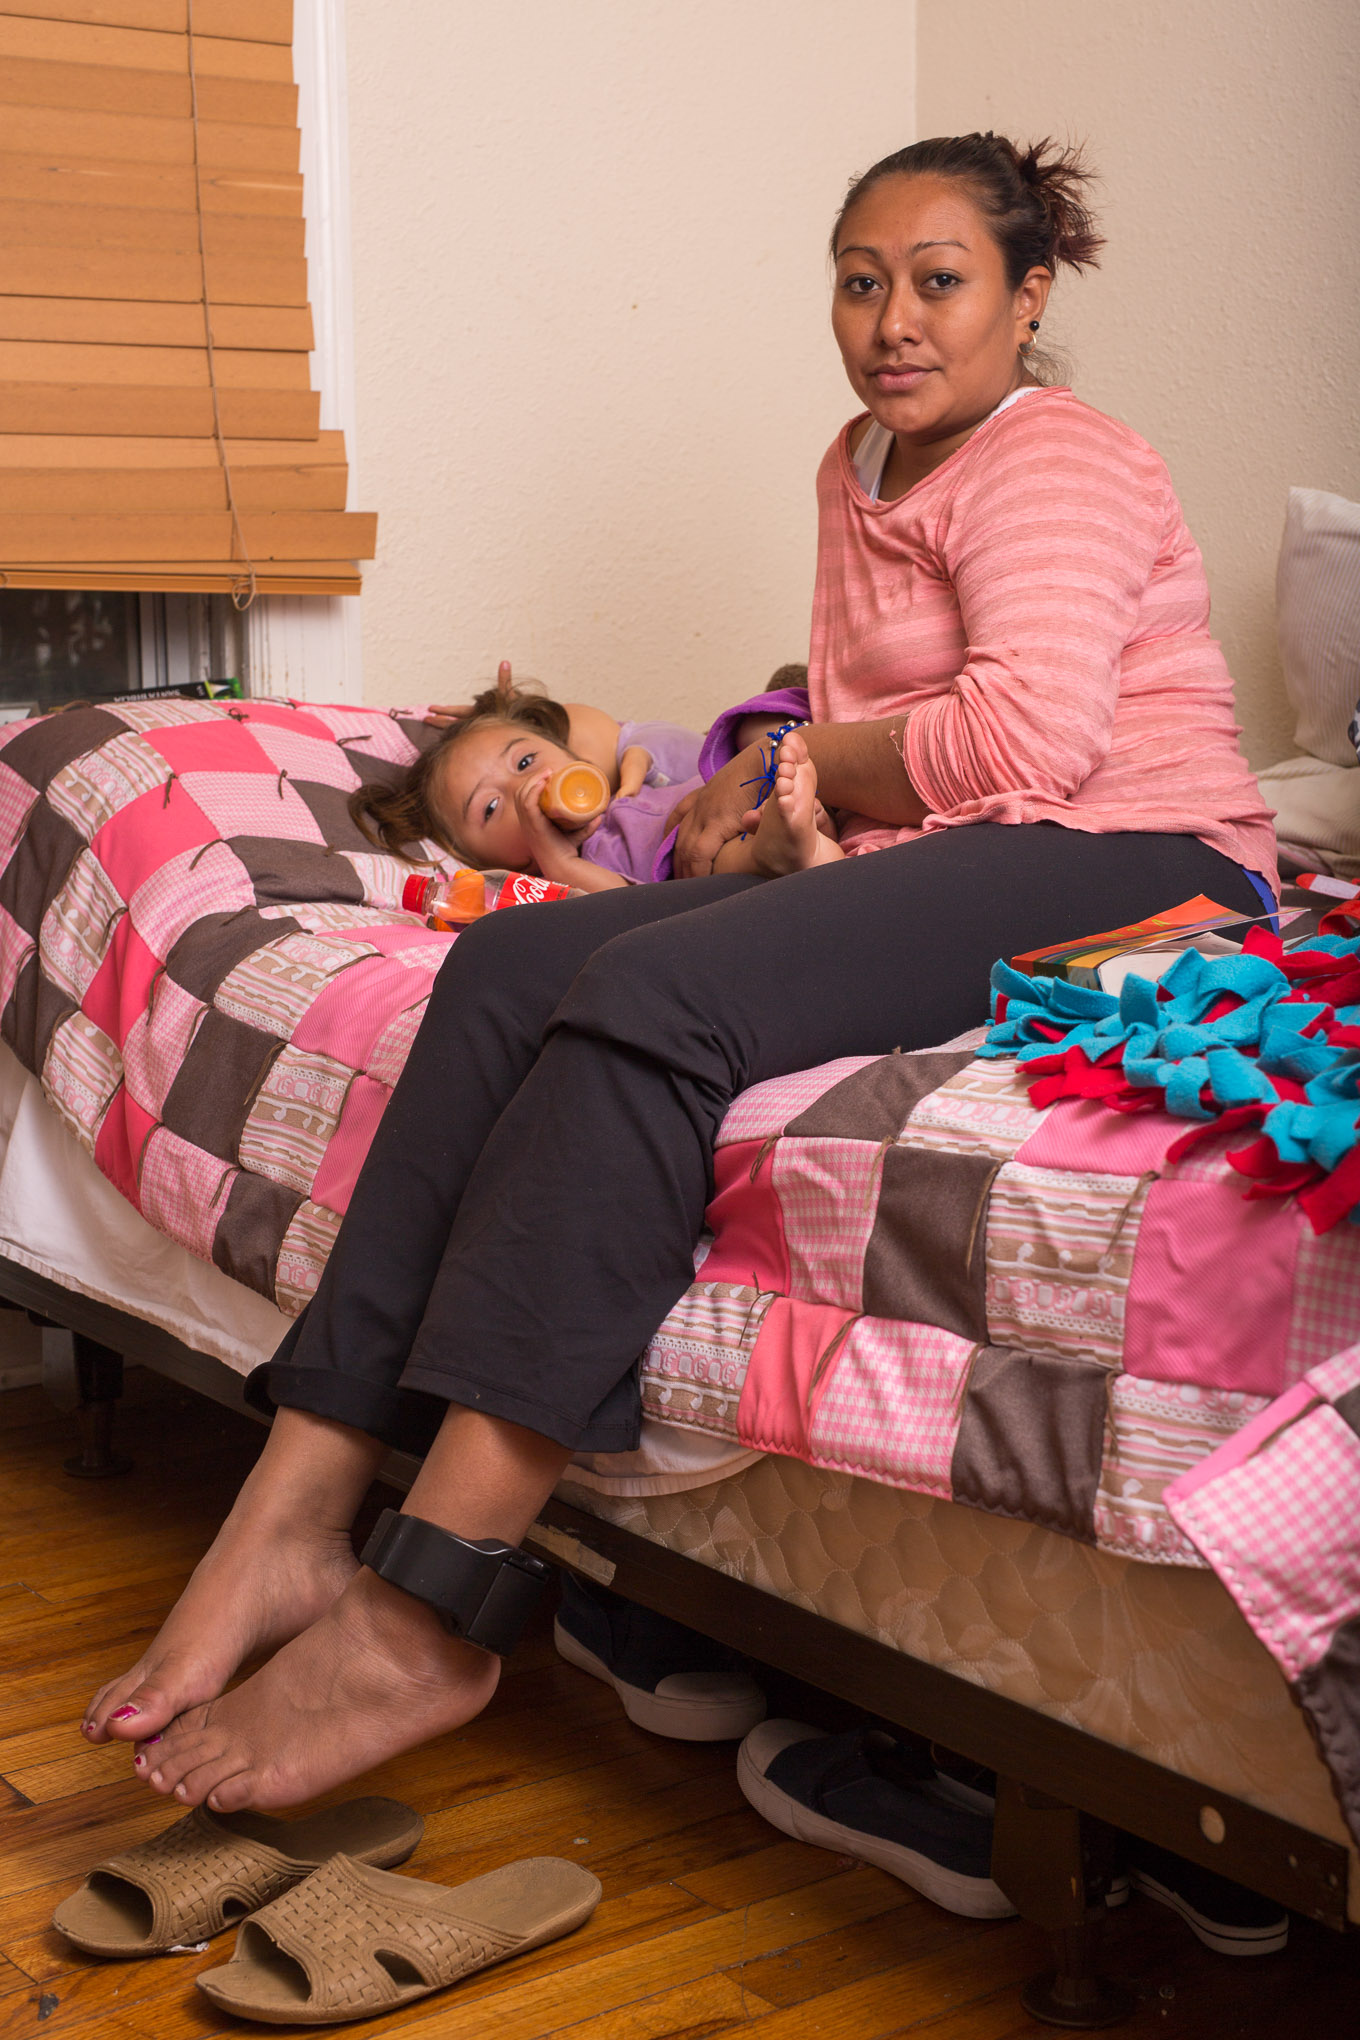 Odalma, 28, and her daughter Yanessa, 2, sit for a portrait on their temporary bed at Casa RAICES.